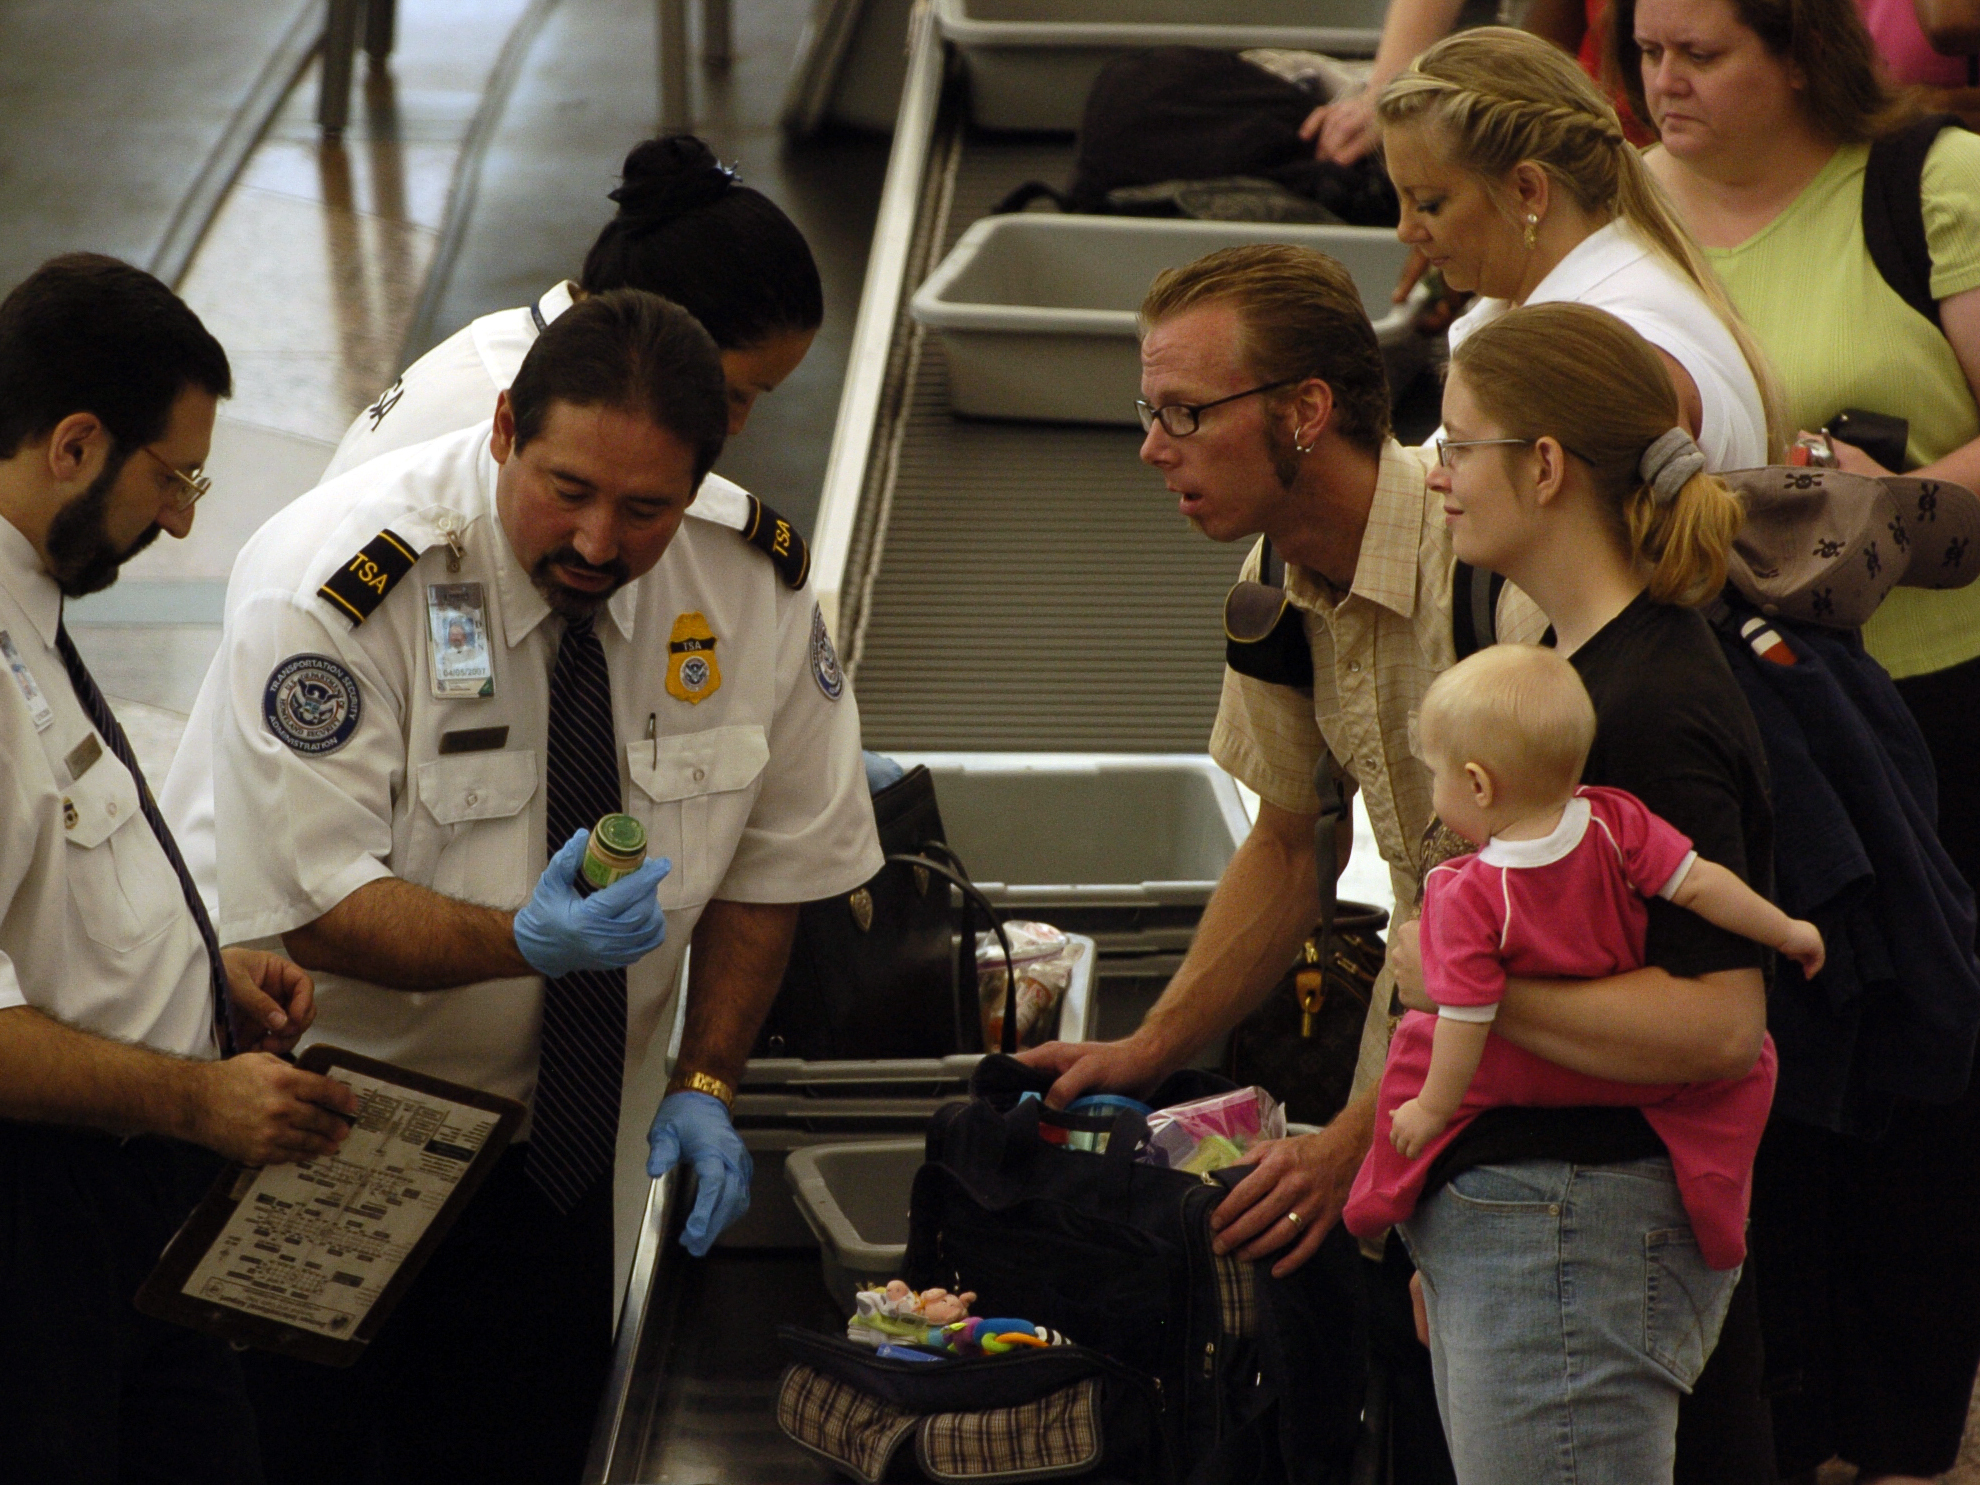 Transportation Security Administration screeners examine and then confiscate bottles of baby food from the carry-on luggage of travelers prior to a flight from Denver International Airport, Thursday, Aug. 10, 2006, in Denver. The airport experienced long